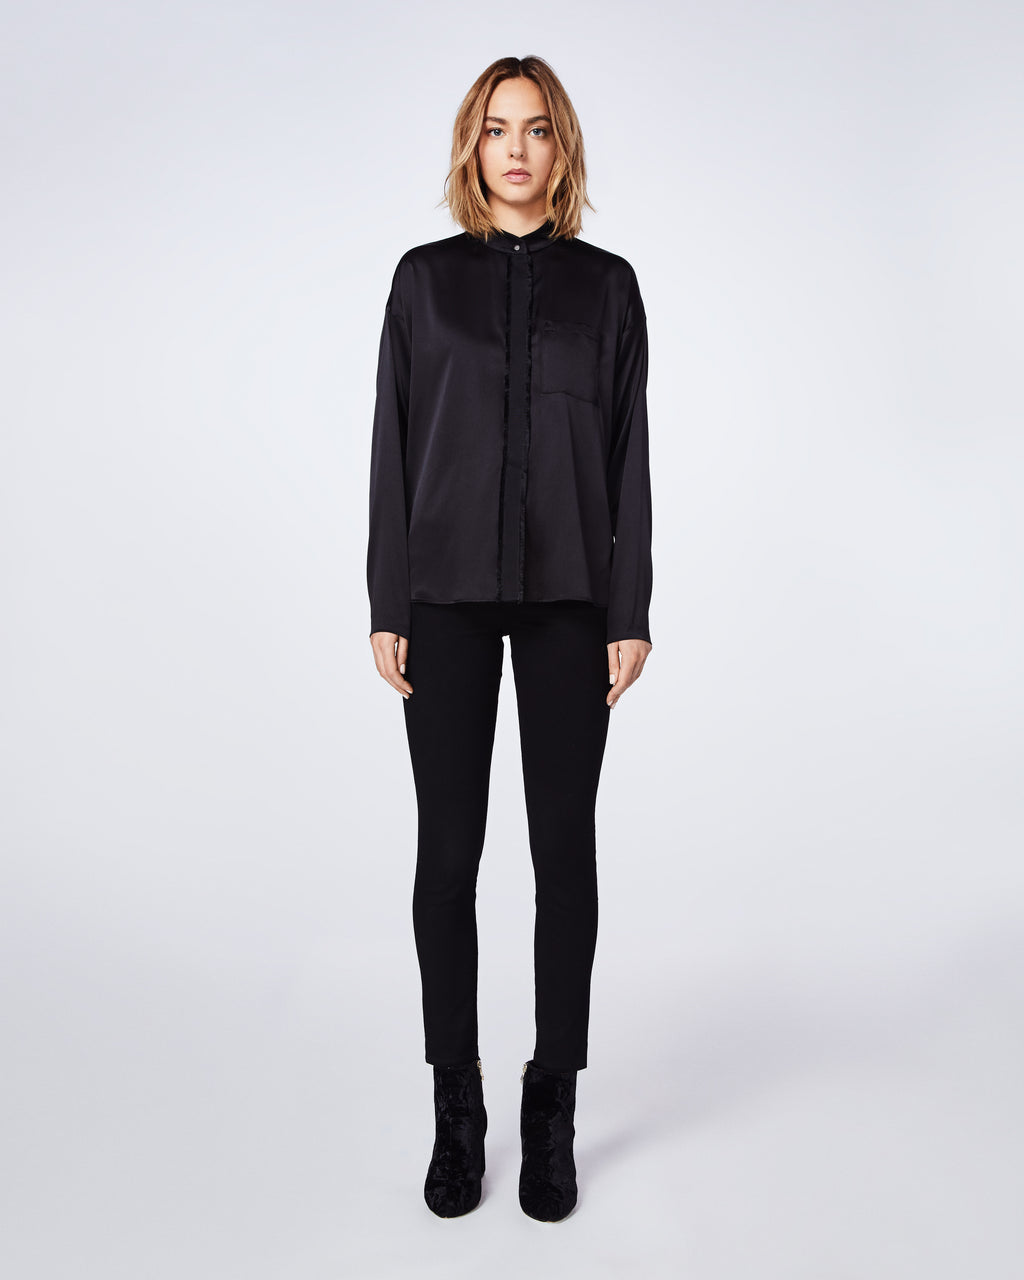 BF10350 - Stretch Charmeuse Button Down Top - tops - blouses - This long-sleeve button down charmeuse top is a classic. Whether you wear it with jeans or dress it up with black leather pant, this style is both cool and easy to wear. Final Sale